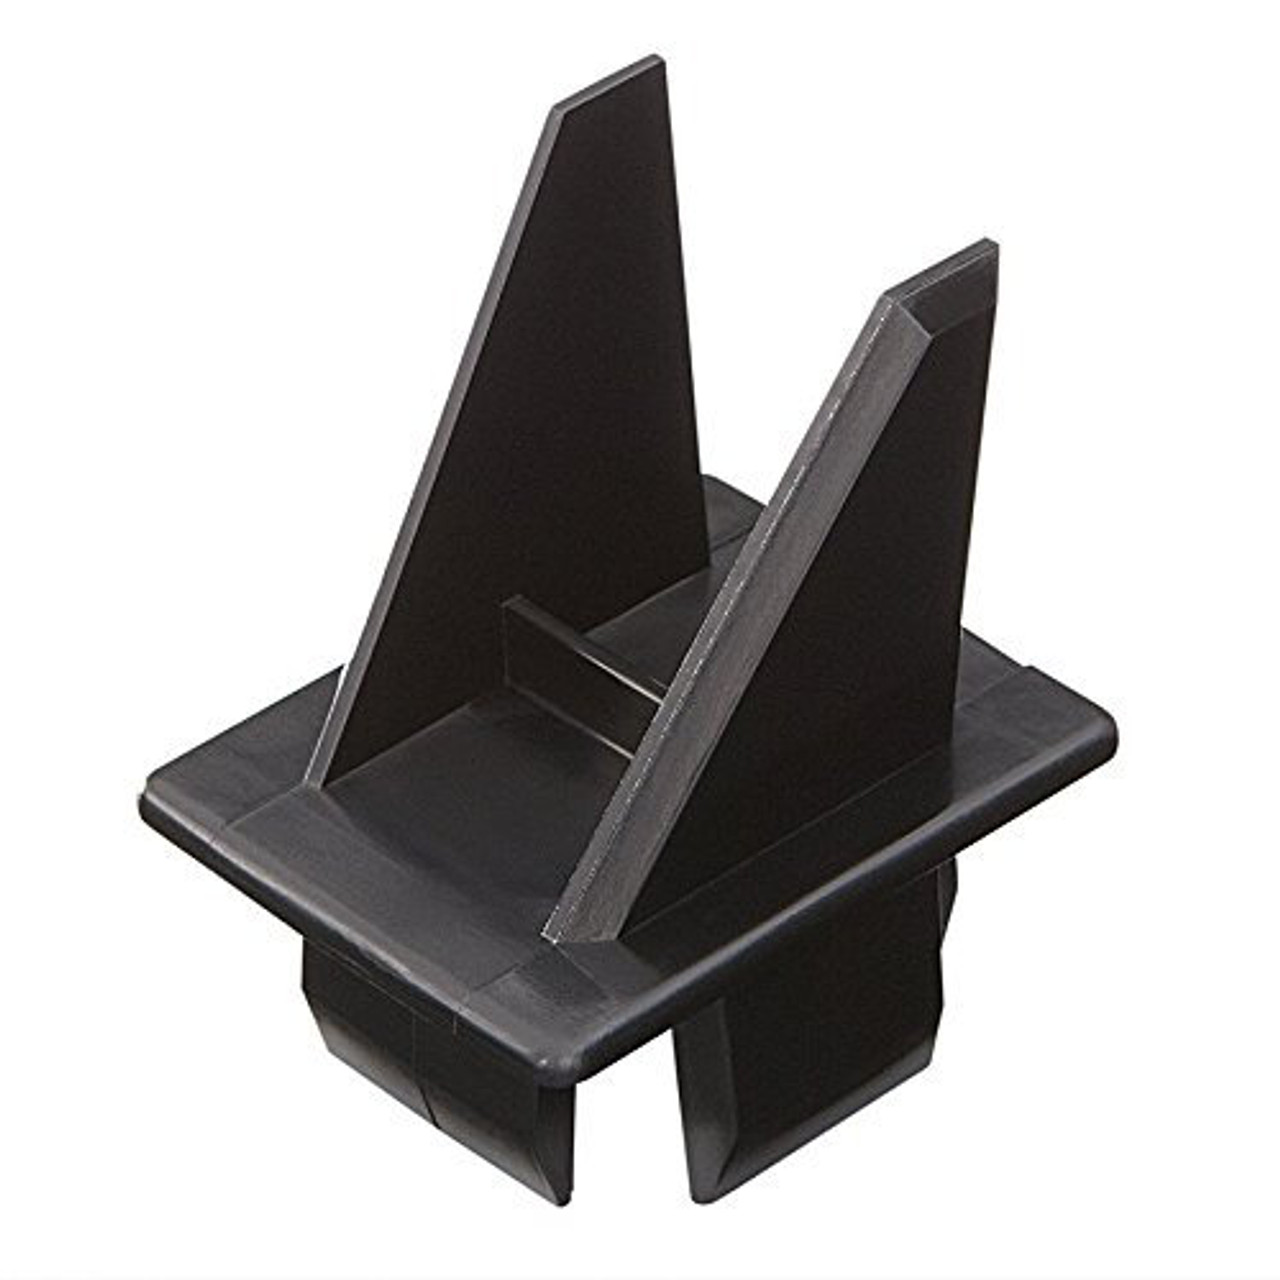 Qty 270 ,Fiberon 13760 Black Stair Inserts for Square Balusters - Step 3